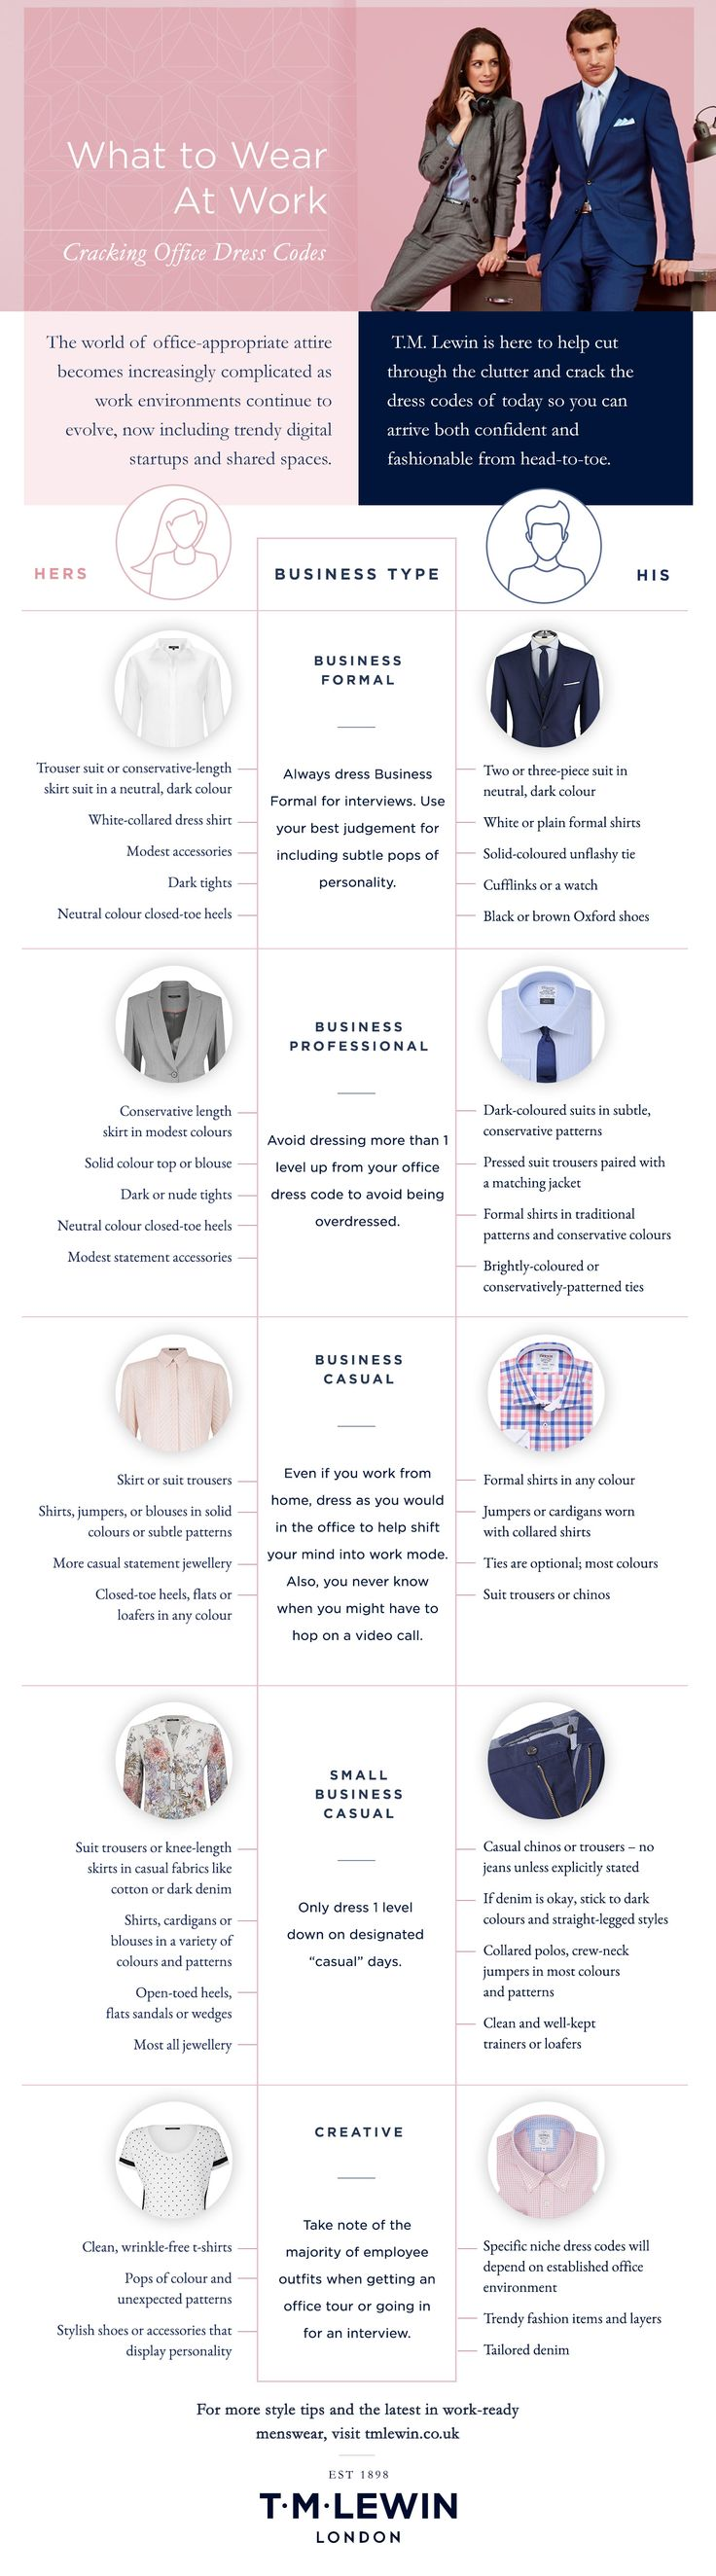 Cracking the Office Dress Code (Five Strengths) https://www.bloglovin.com/blogs/five-strengths-18282995/cracking-office-dress-code-5282718577